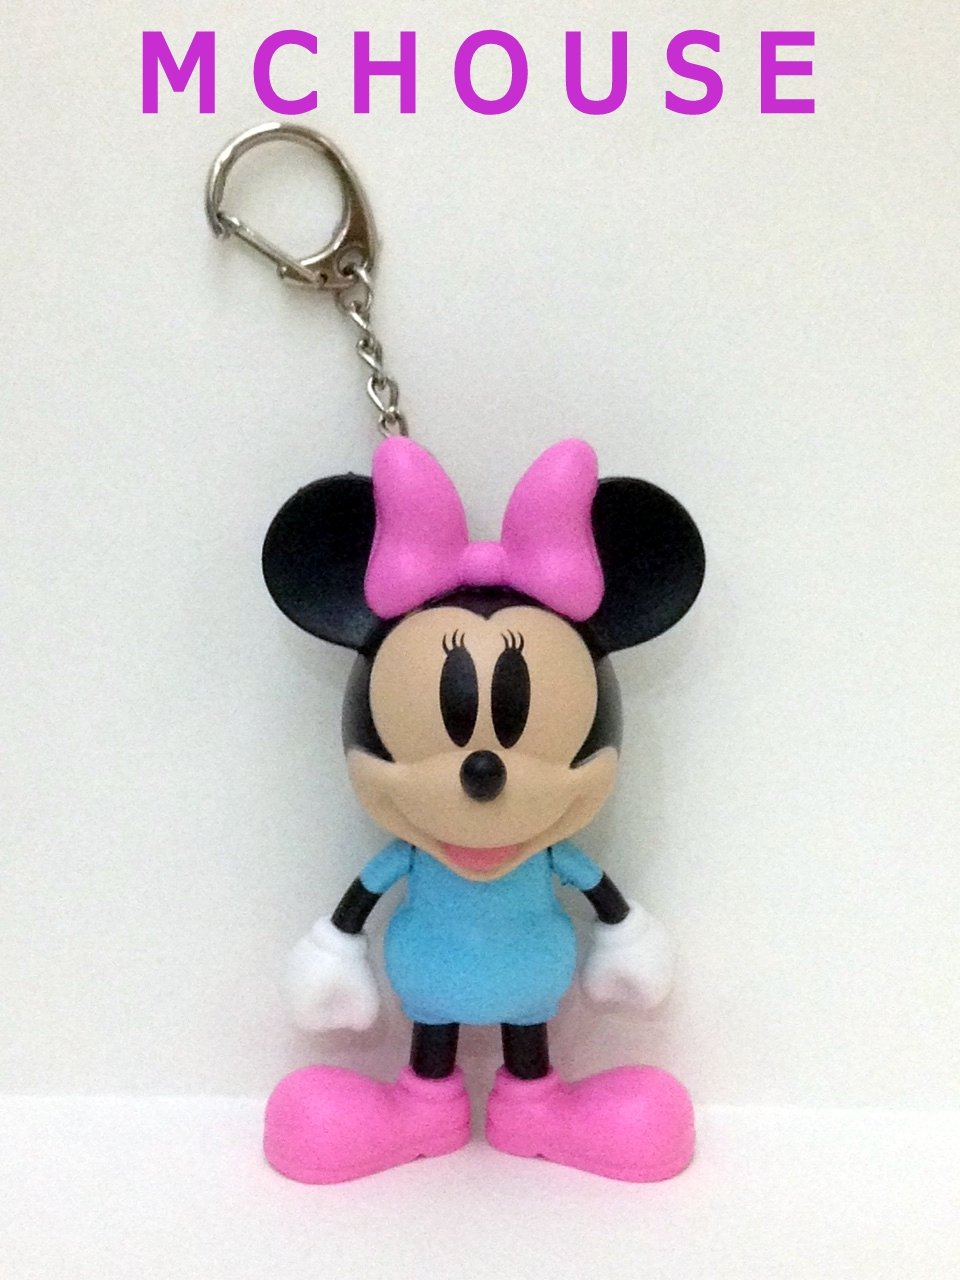 7-11 HK Disney 90th Mickey Mouse and Friends No.2 Classic Minnie Keychain